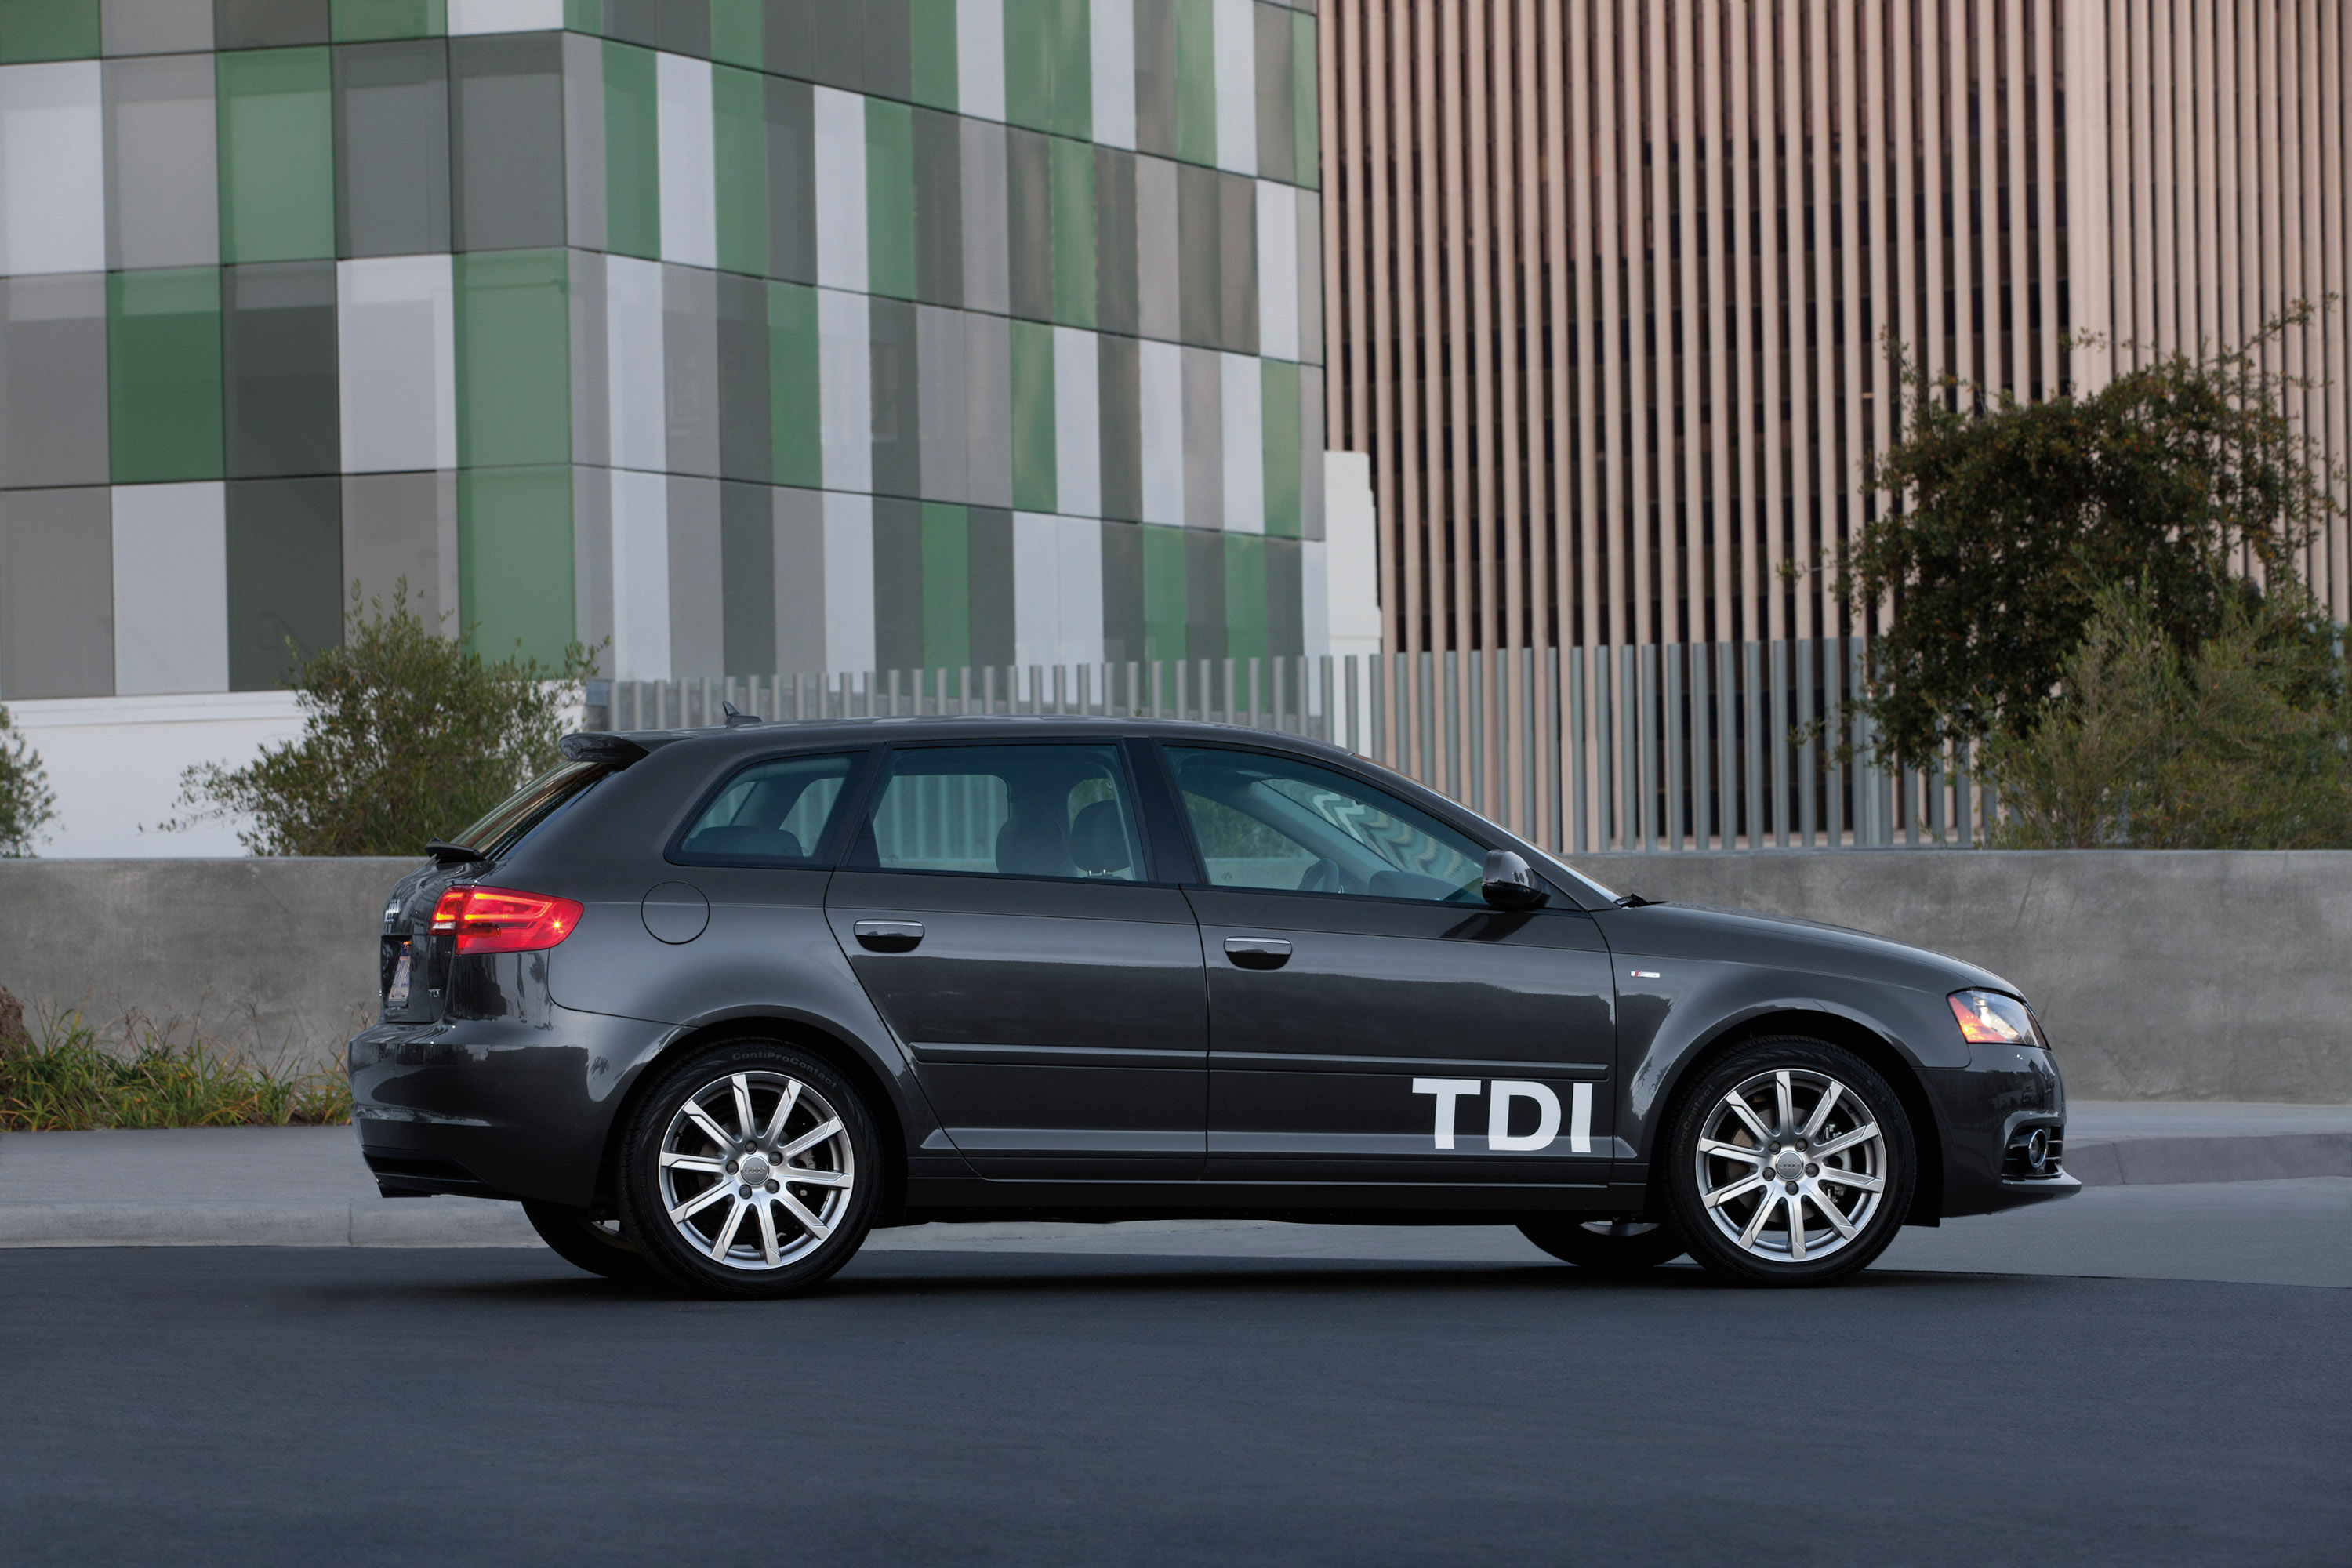 2012 audi a3 tdi clean diesel picture 65718. Black Bedroom Furniture Sets. Home Design Ideas